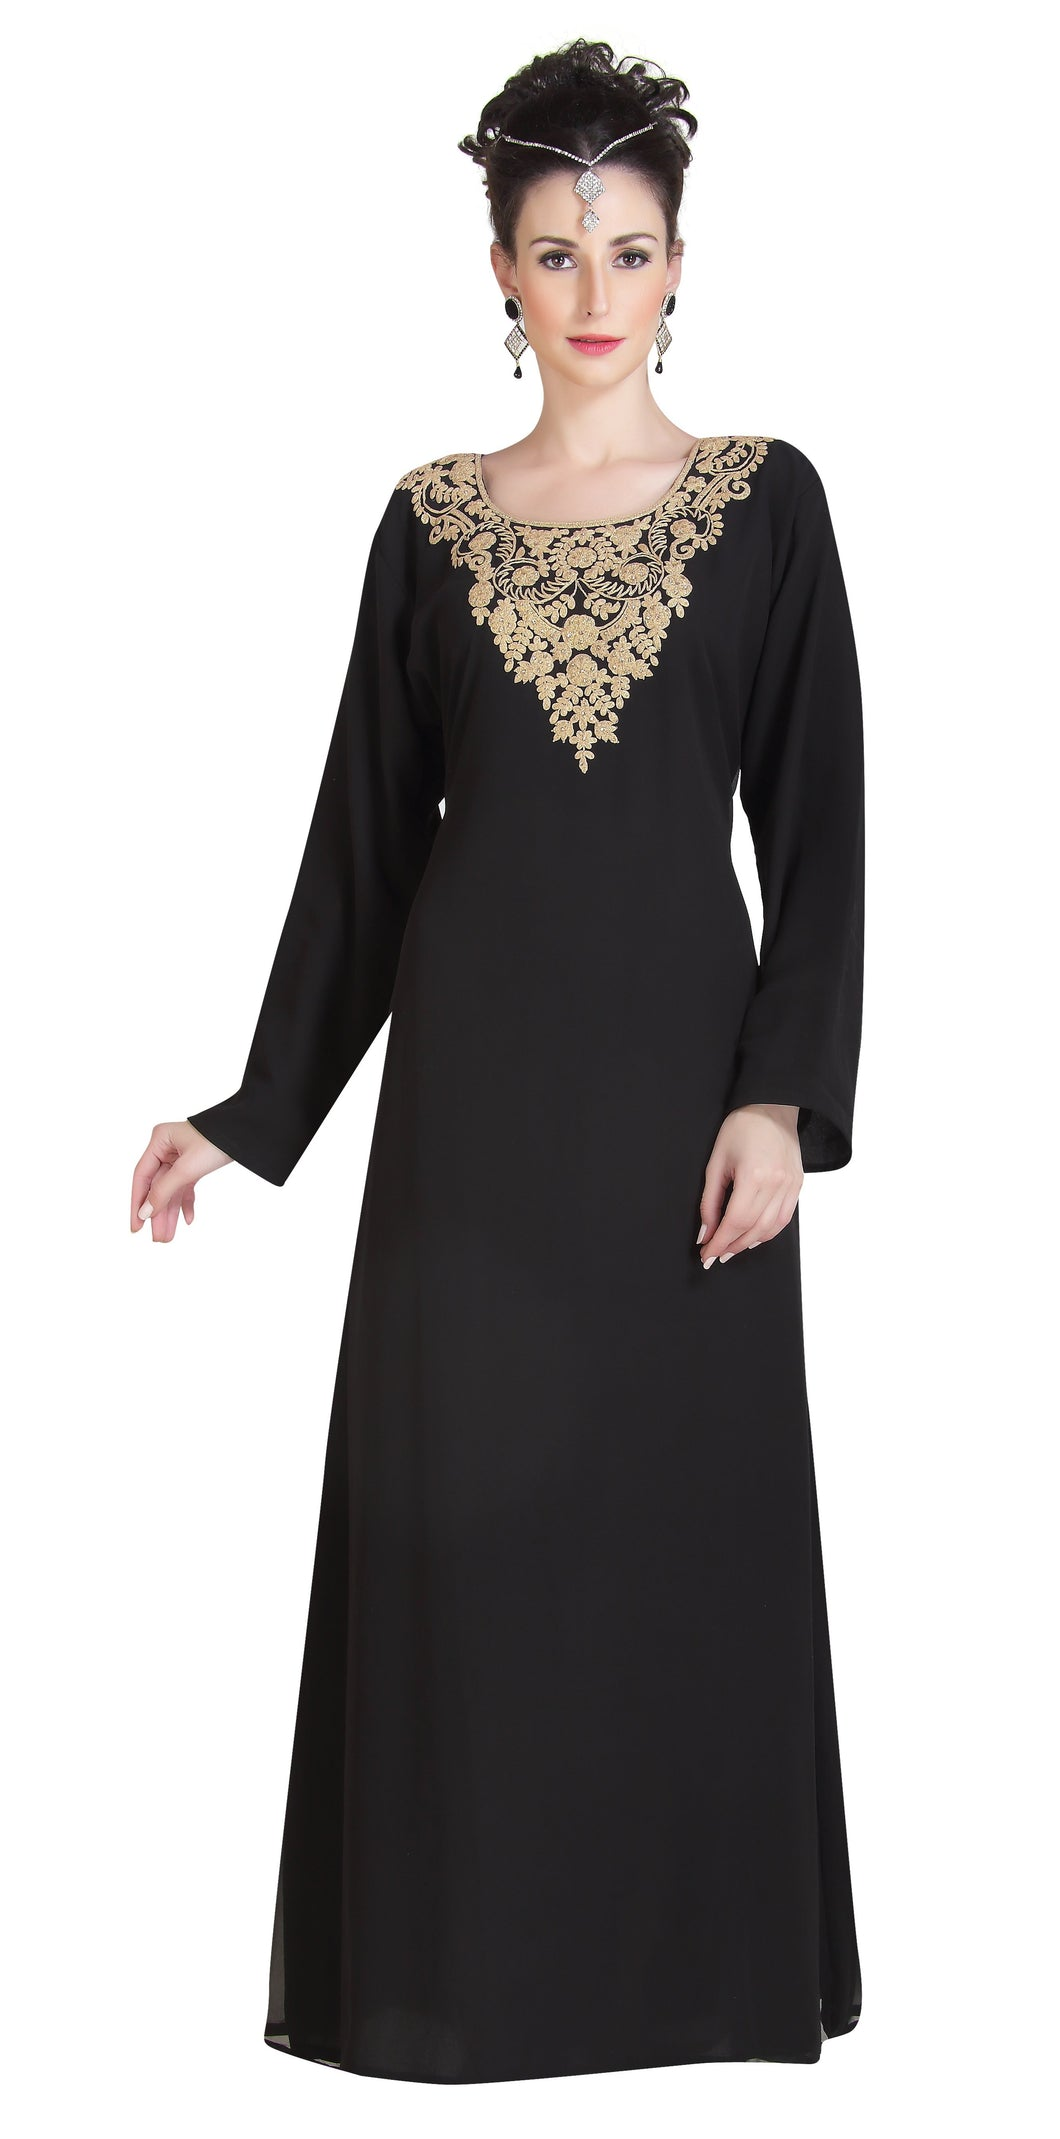 Black Beautiful Farasha With Golden Work Embroidery For Bulk Buy